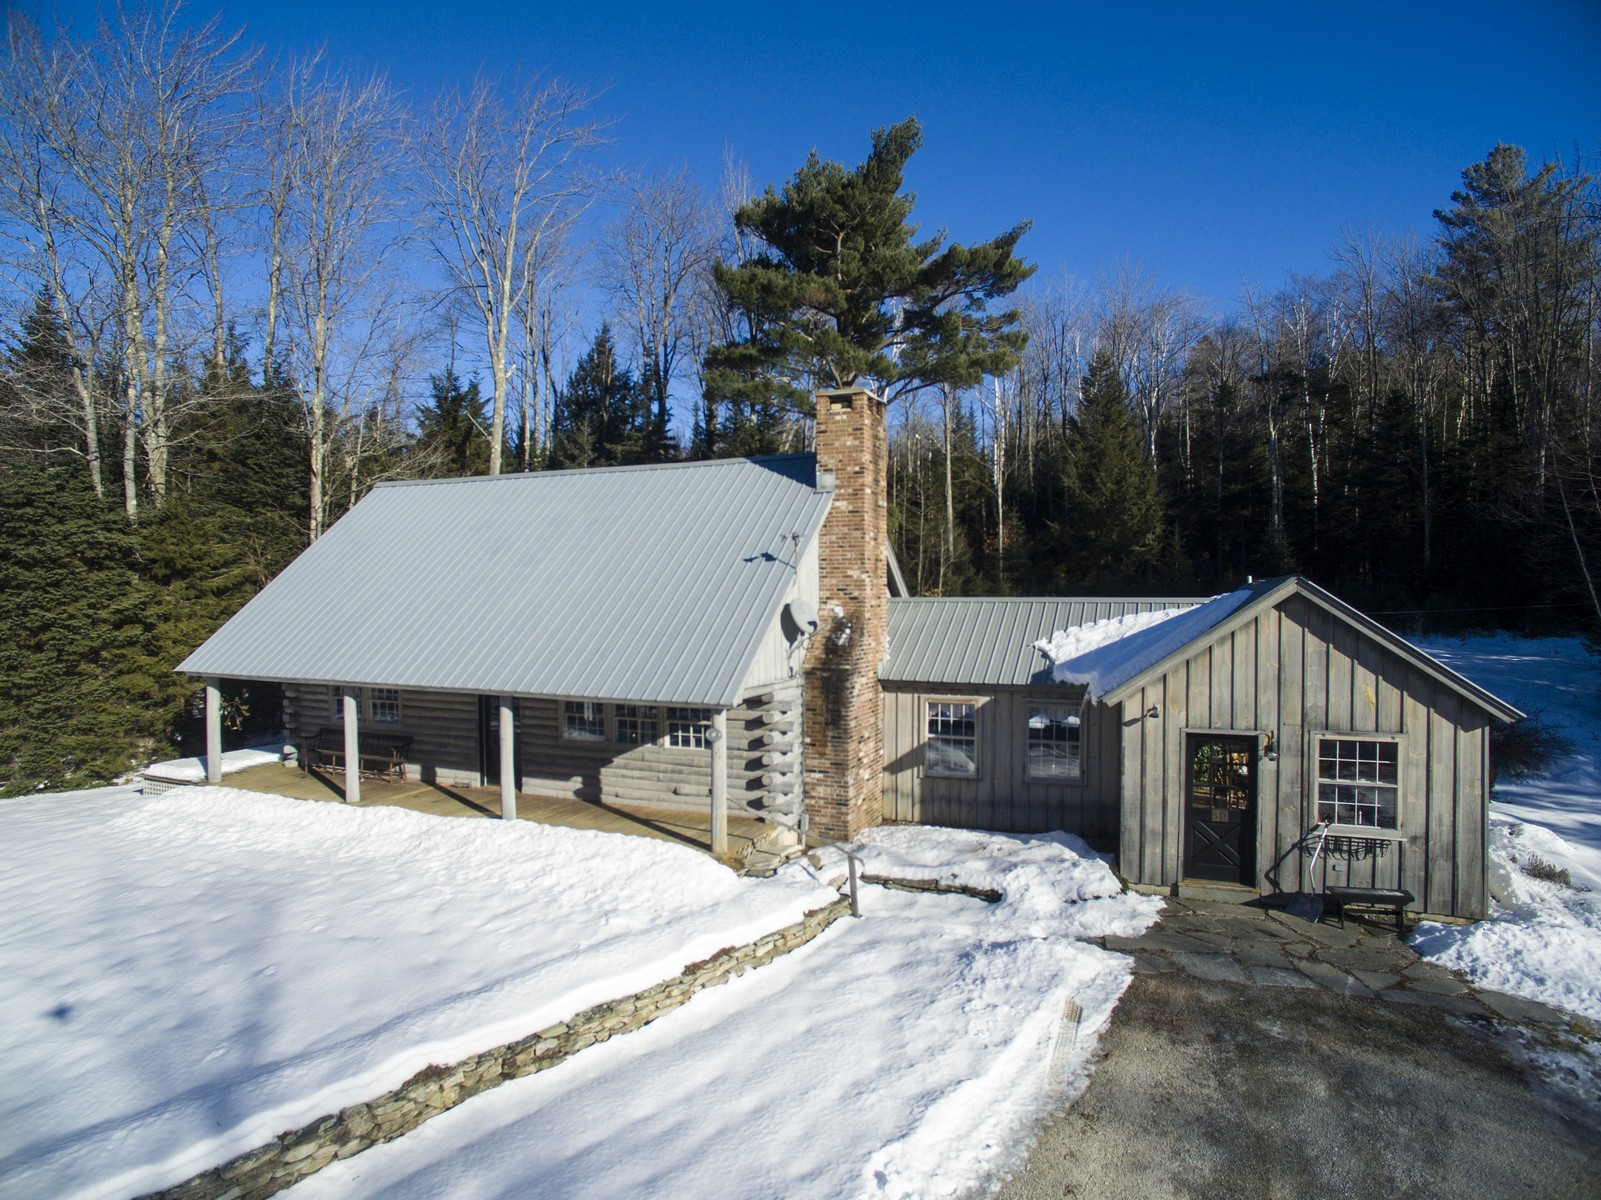 Single Family Home for Sale at 59 Spruce, Peru Peru, Vermont, 05152 United States